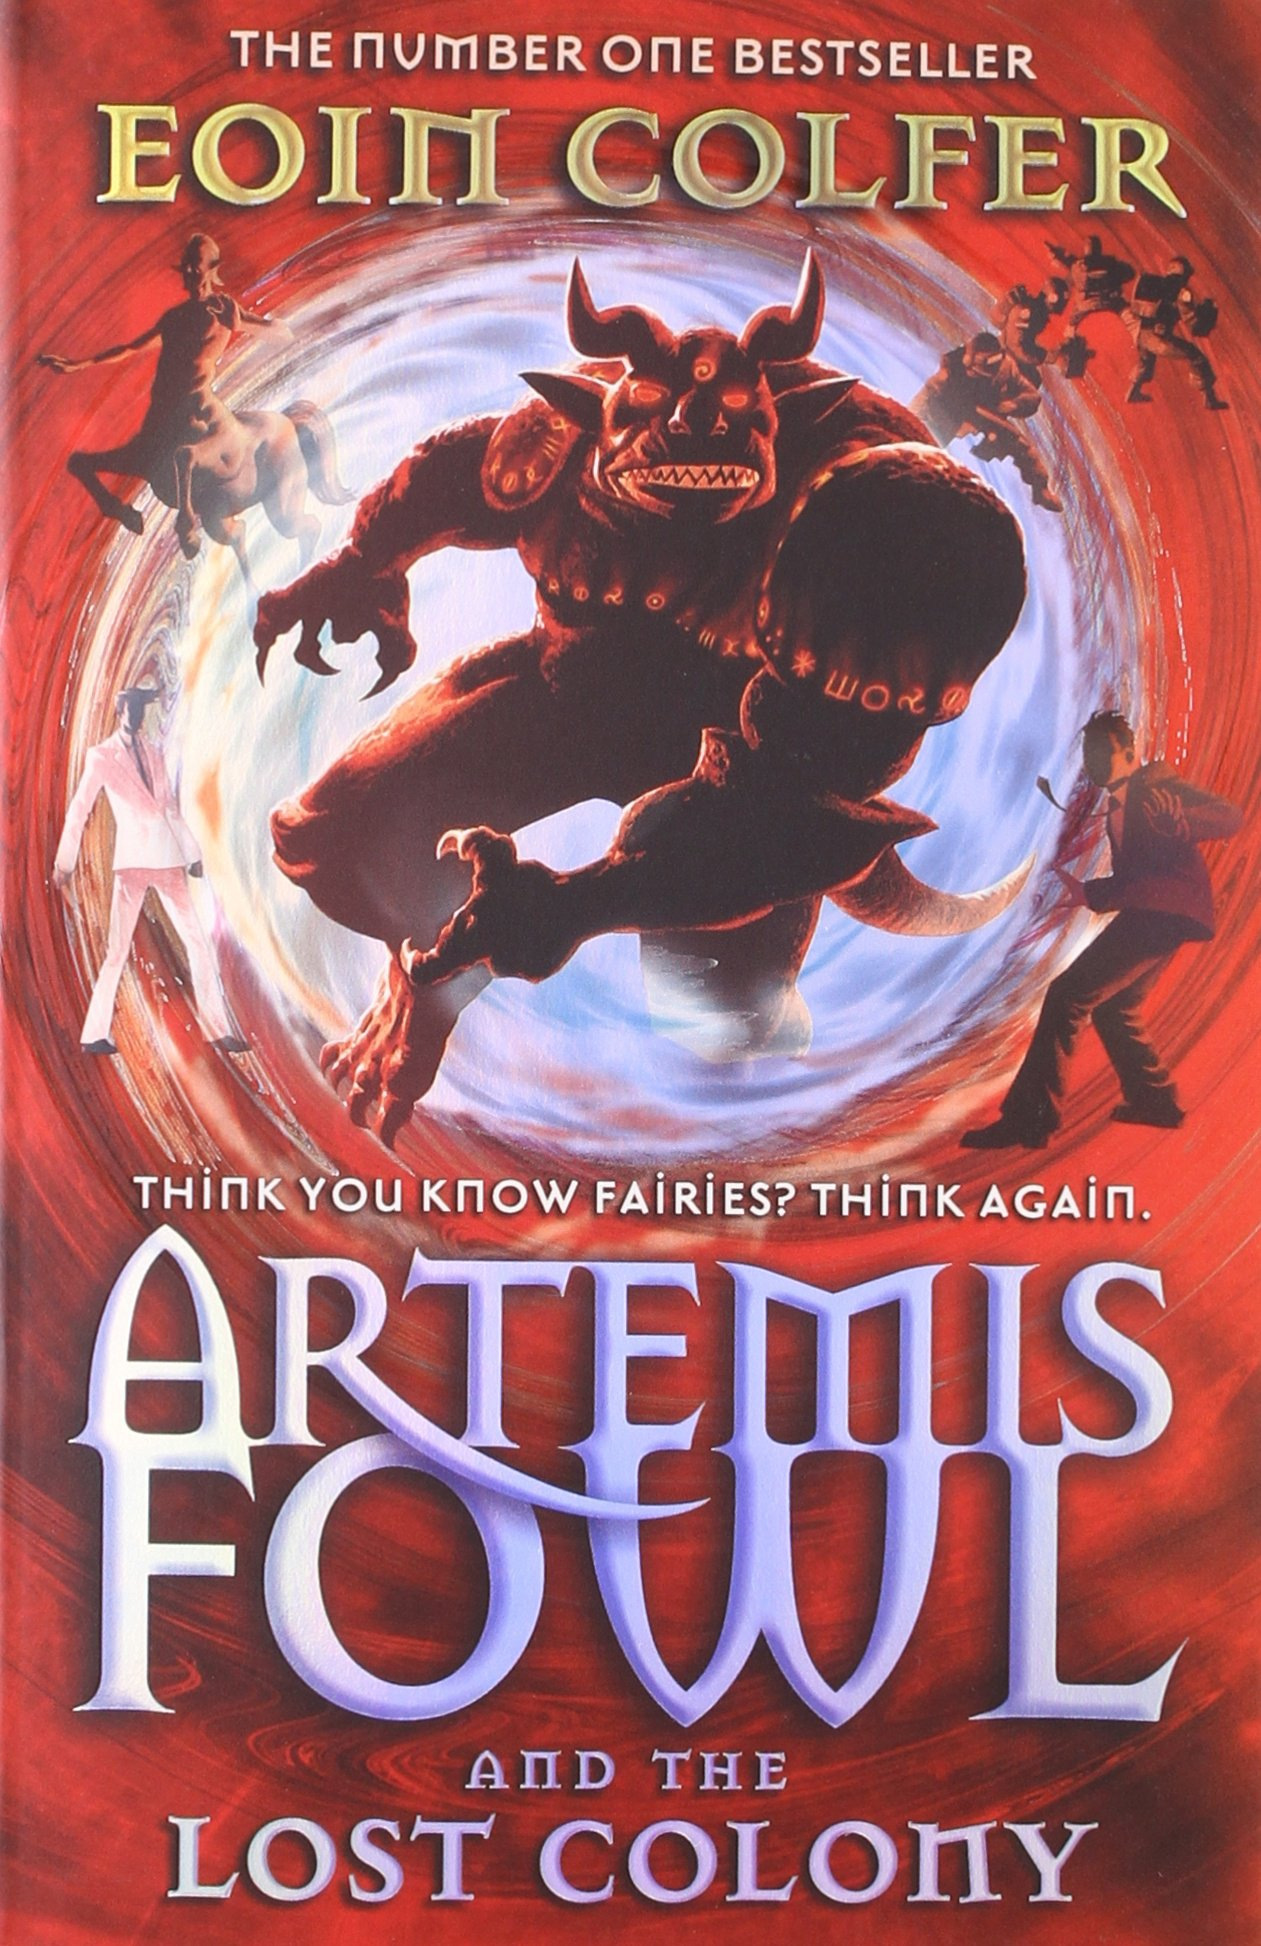 Buy Artemis Fowl And The Lost Colony Book Online At Low Prices In India  Artemis  Fowl And The Lost Colony Reviews & Ratings  Amazon